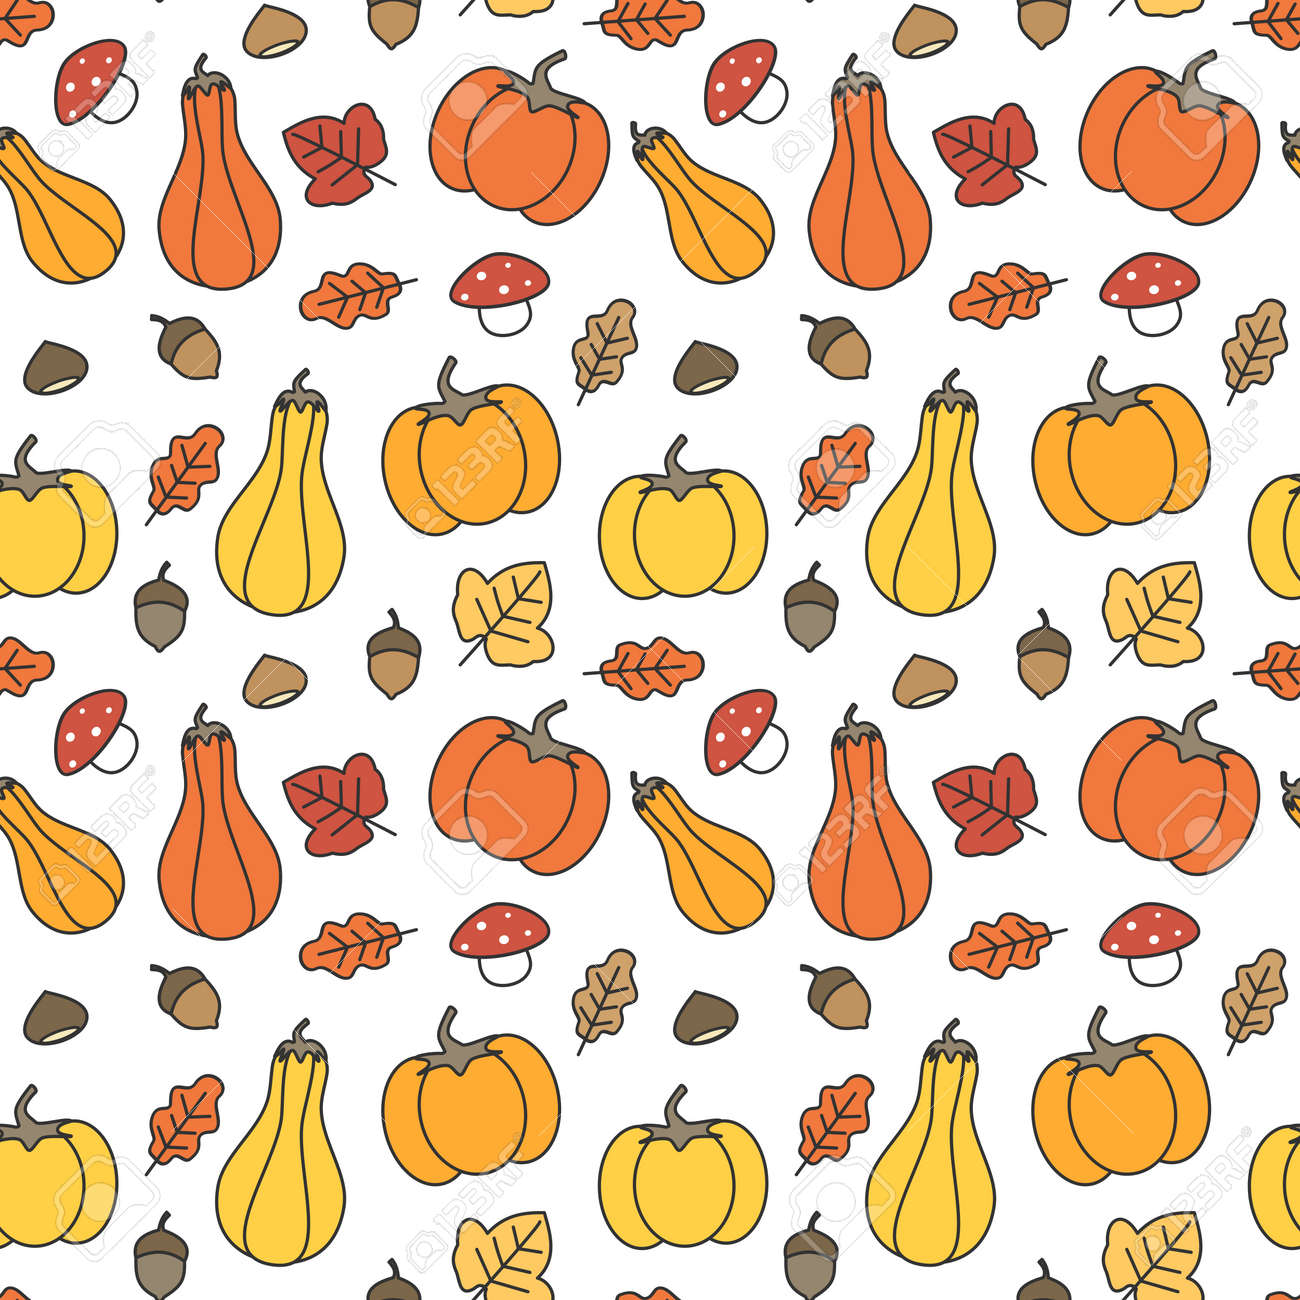 Cute Fall Autumn Seamless Pattern Background With Pumpkins Leaves Royalty Free Cliparts Vectors And Stock Illustration Image 105864199